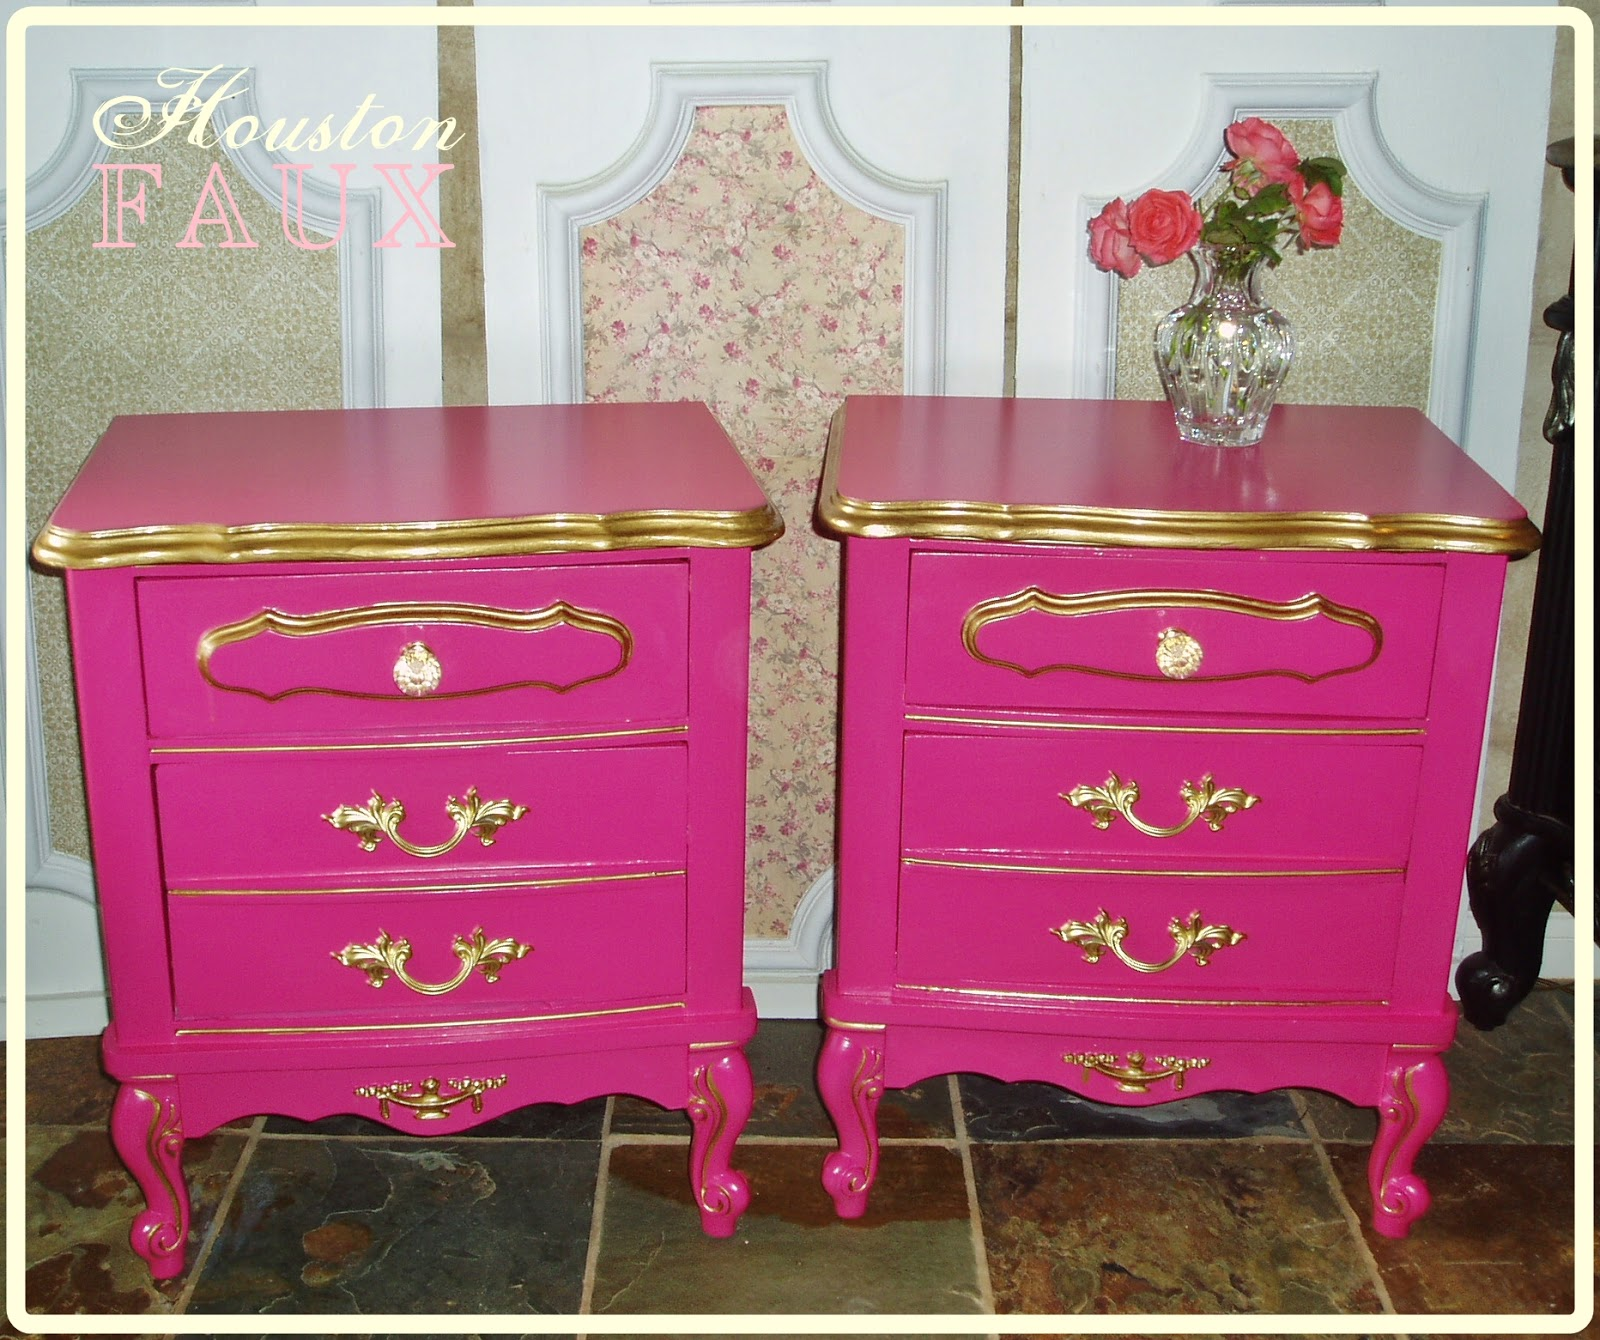 Hand Painted In Highlights Of Brushed Gold Vintage French Provincial With Original Hardware On Bottom Drawers New Crystal S Have Replaced The